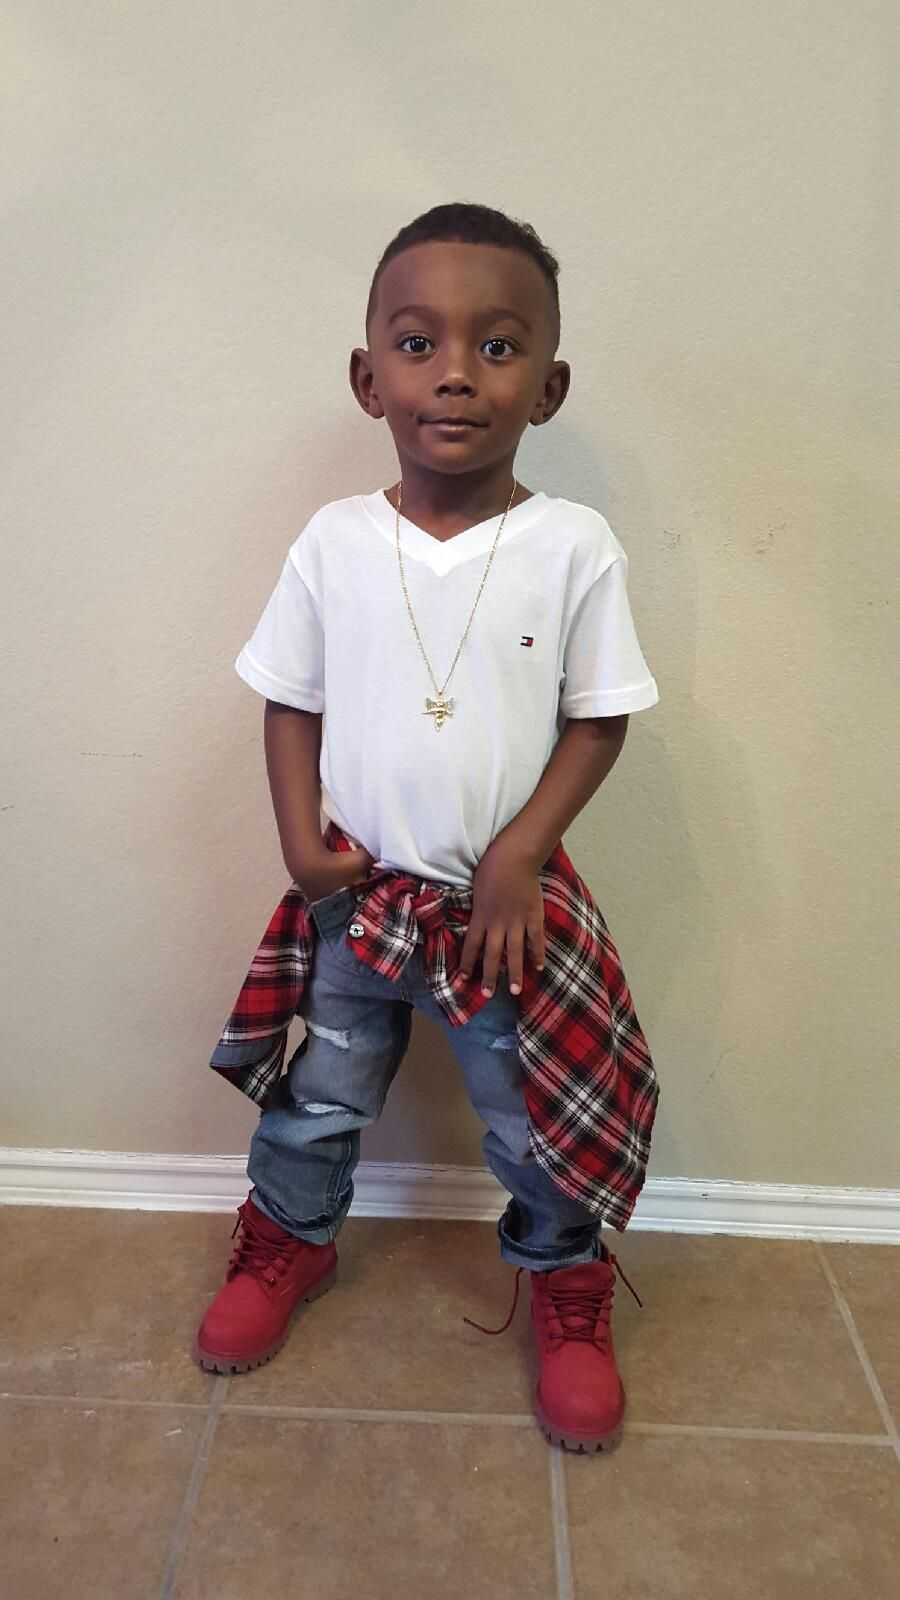 Boys Swag Fresh Red Timberlands Timberland Outfit Cute Kids | Gimme That Look | Pinterest ...